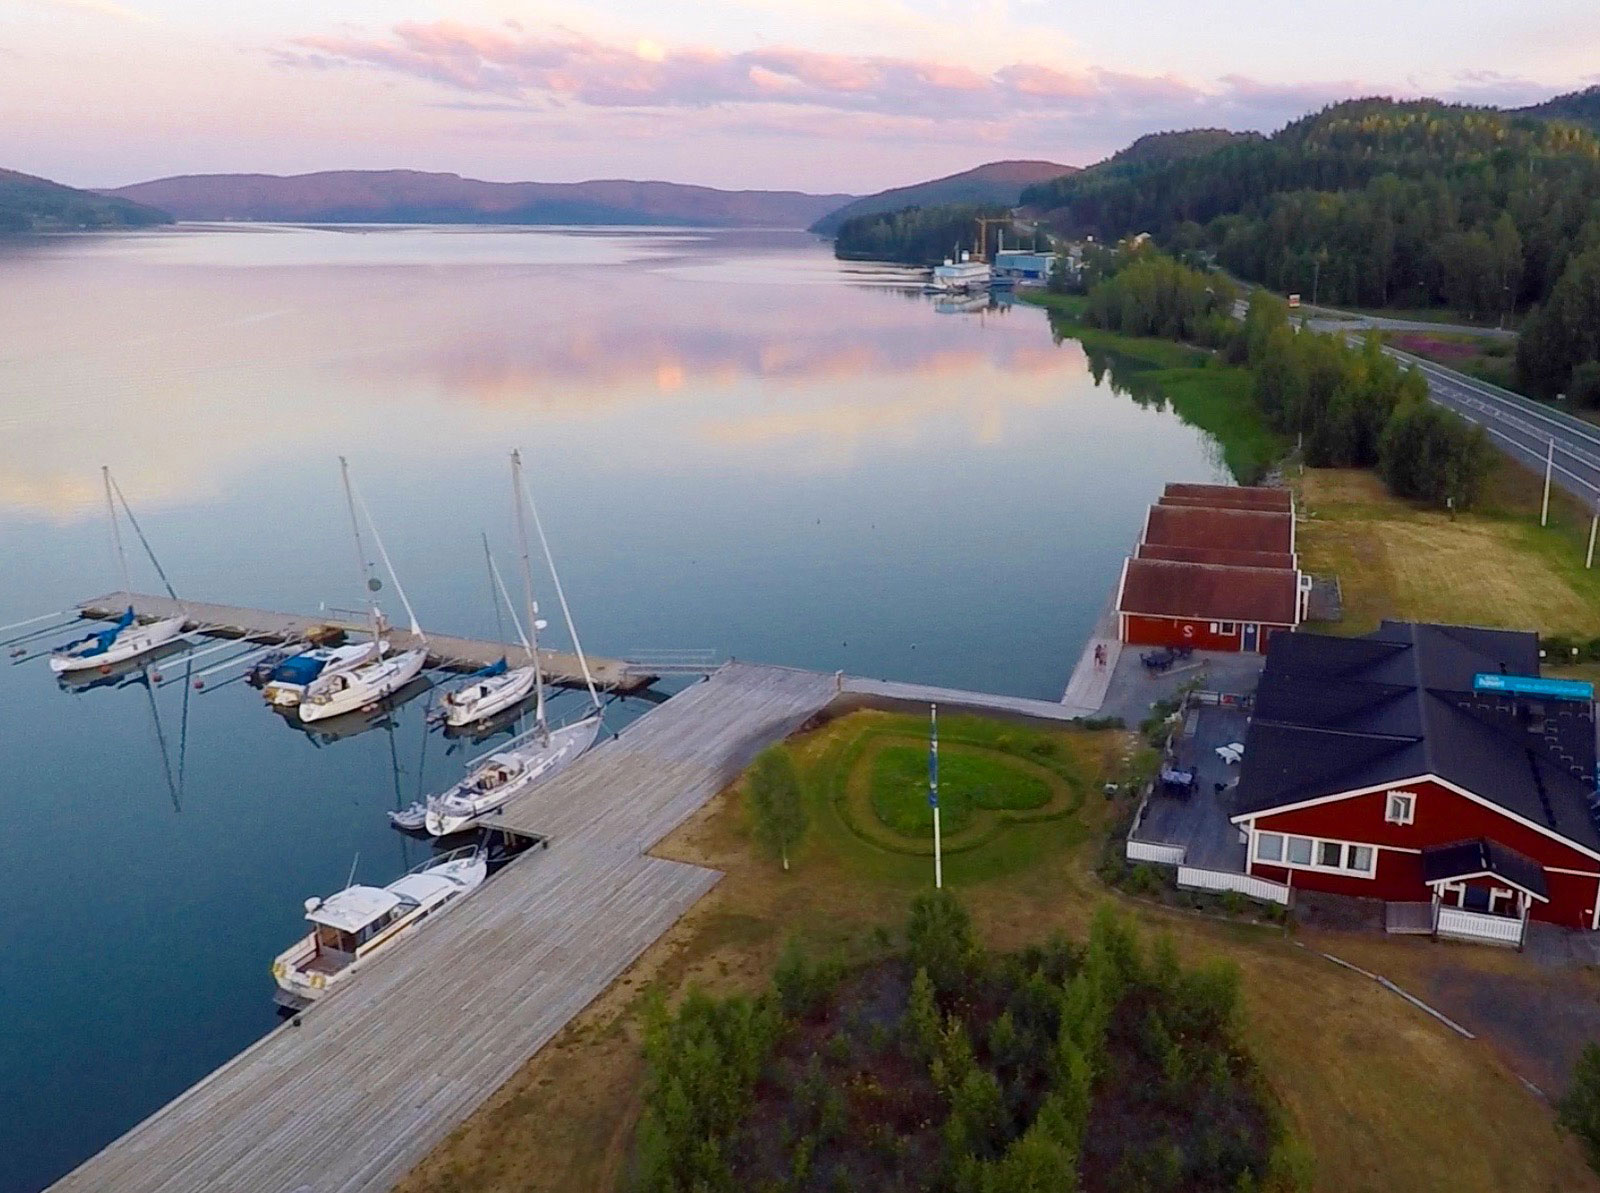 Your boat safely moored to start exploring Skuleskogen and Skuleberget - The Sailor's Base Camp in the heart of the High Coast >